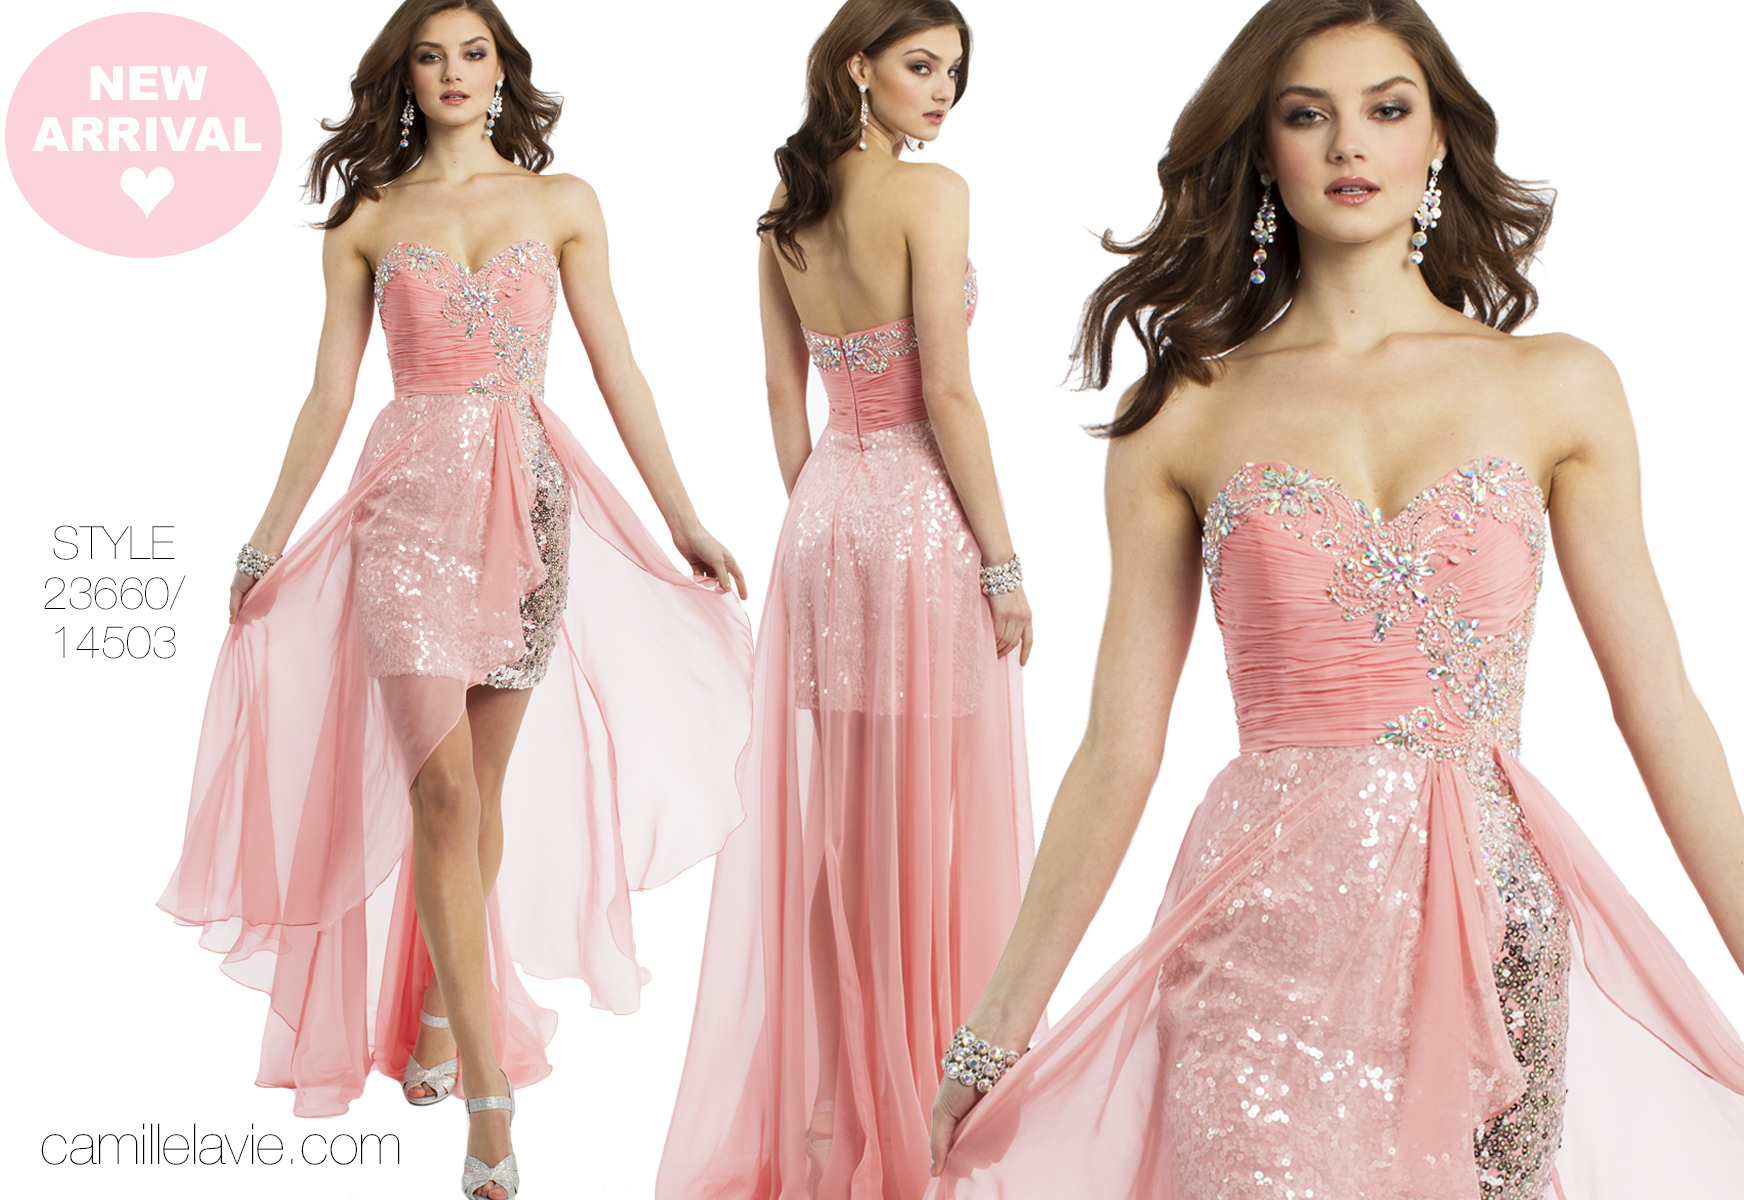 pink and sparkly prom dresses for spring 2014 | Camille La Vie